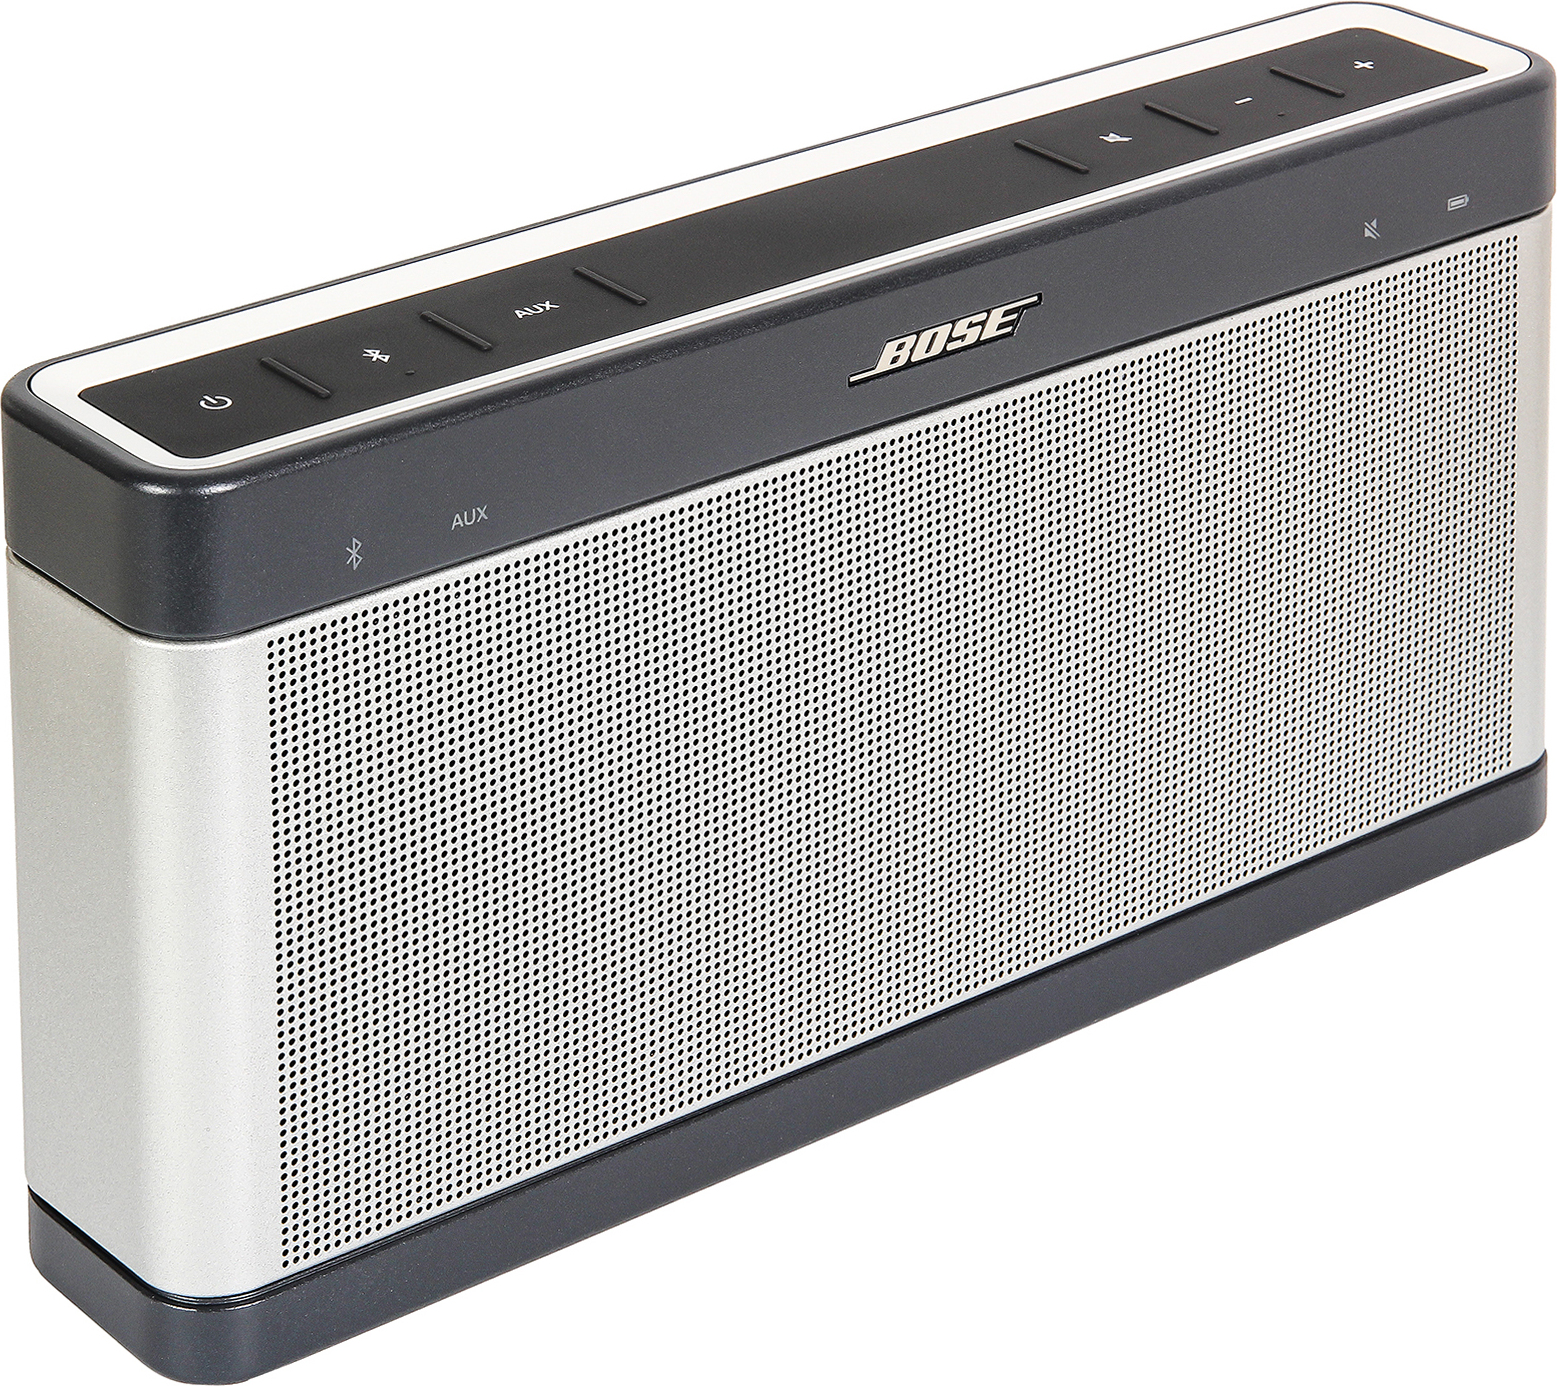 bose soundlink iii prix test et fiche technique de l 39 enceinte performante sans fil. Black Bedroom Furniture Sets. Home Design Ideas